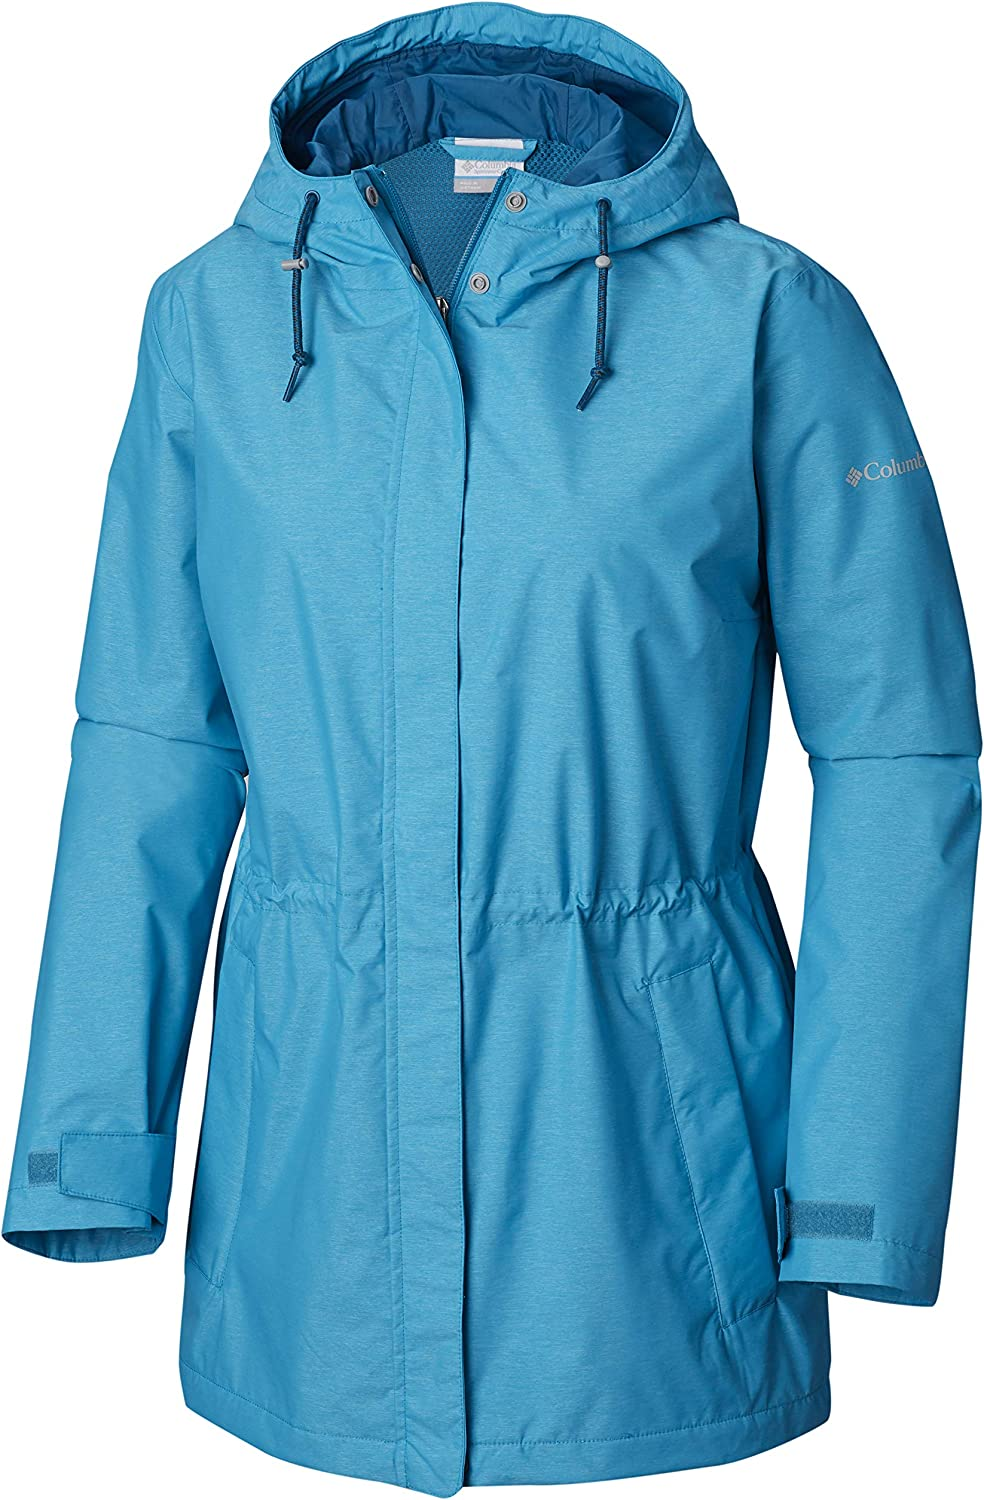 Columbia Women's Norwalk Mountain Jacket, Waterproof & Breathable